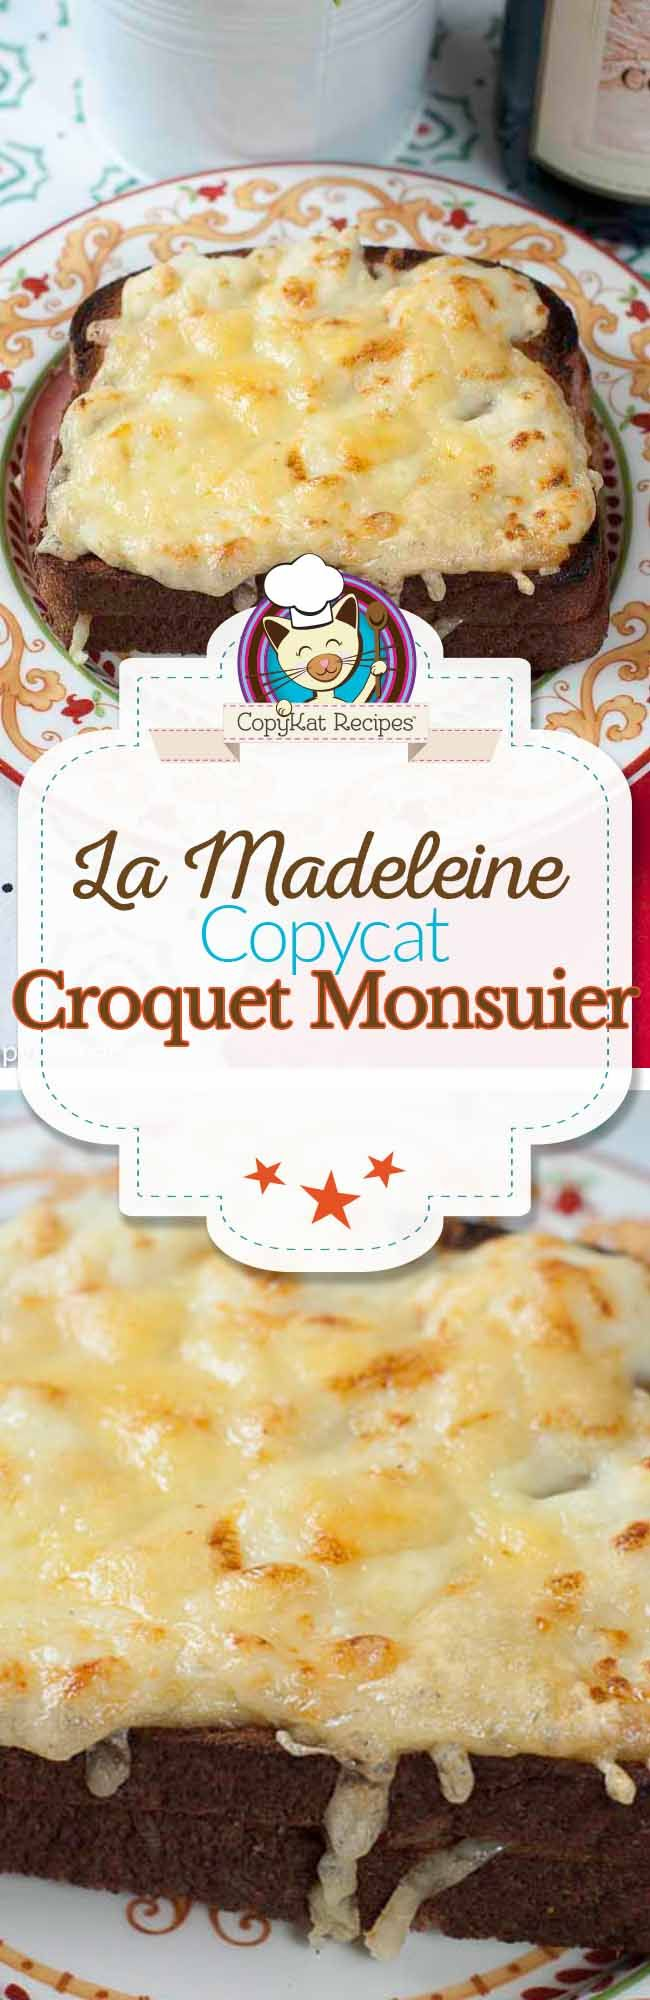 Enjoy this classic French menu item from La Madeleine, the Croquet Monsieur is not to be missed.